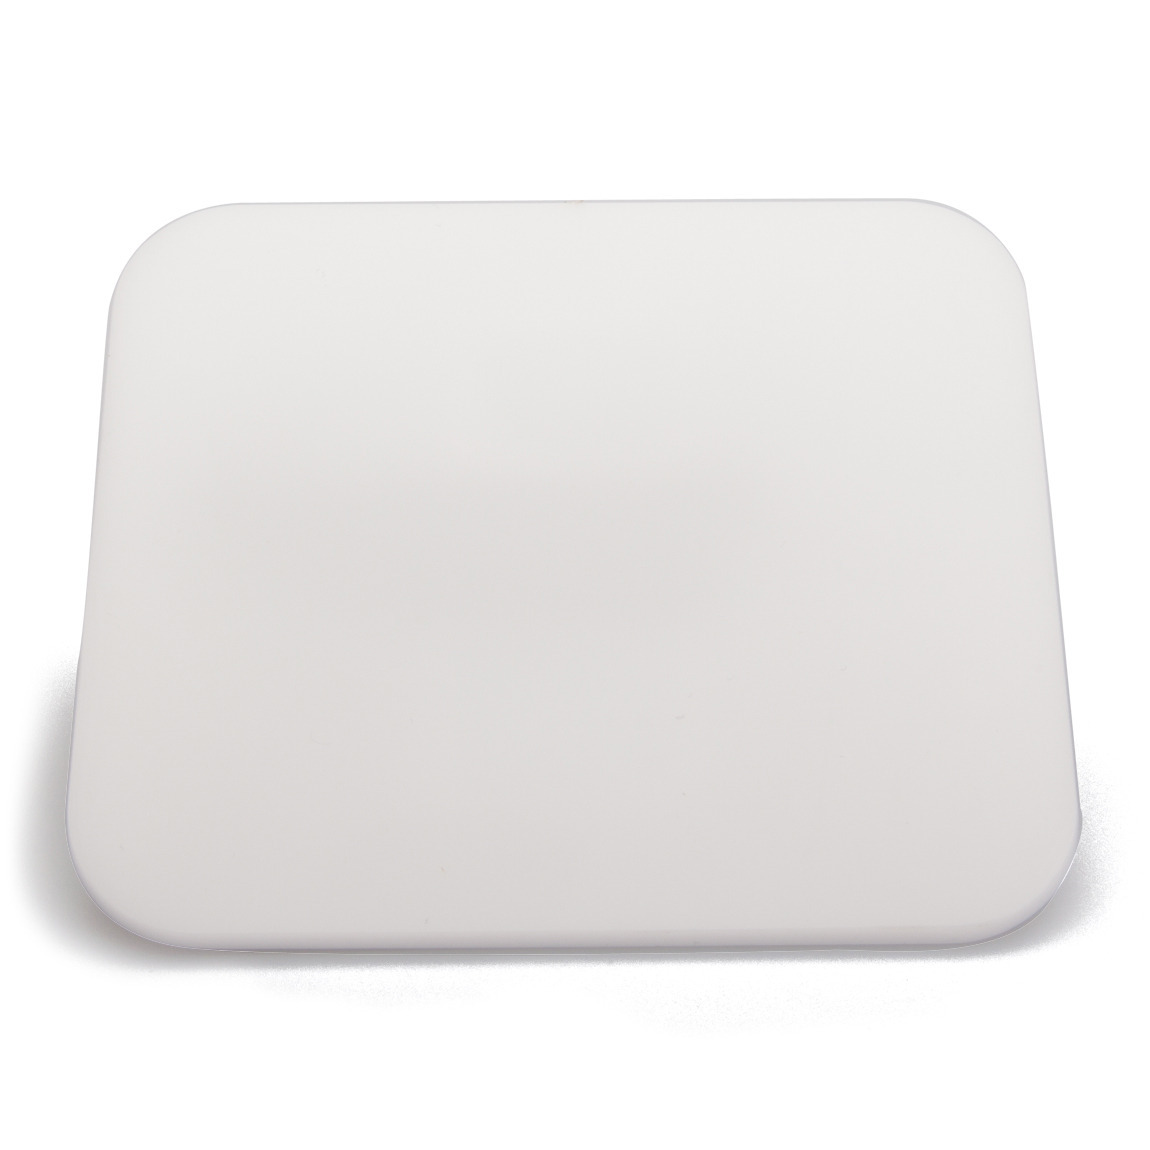 Paw Palette Magnetic White OG product swatch.